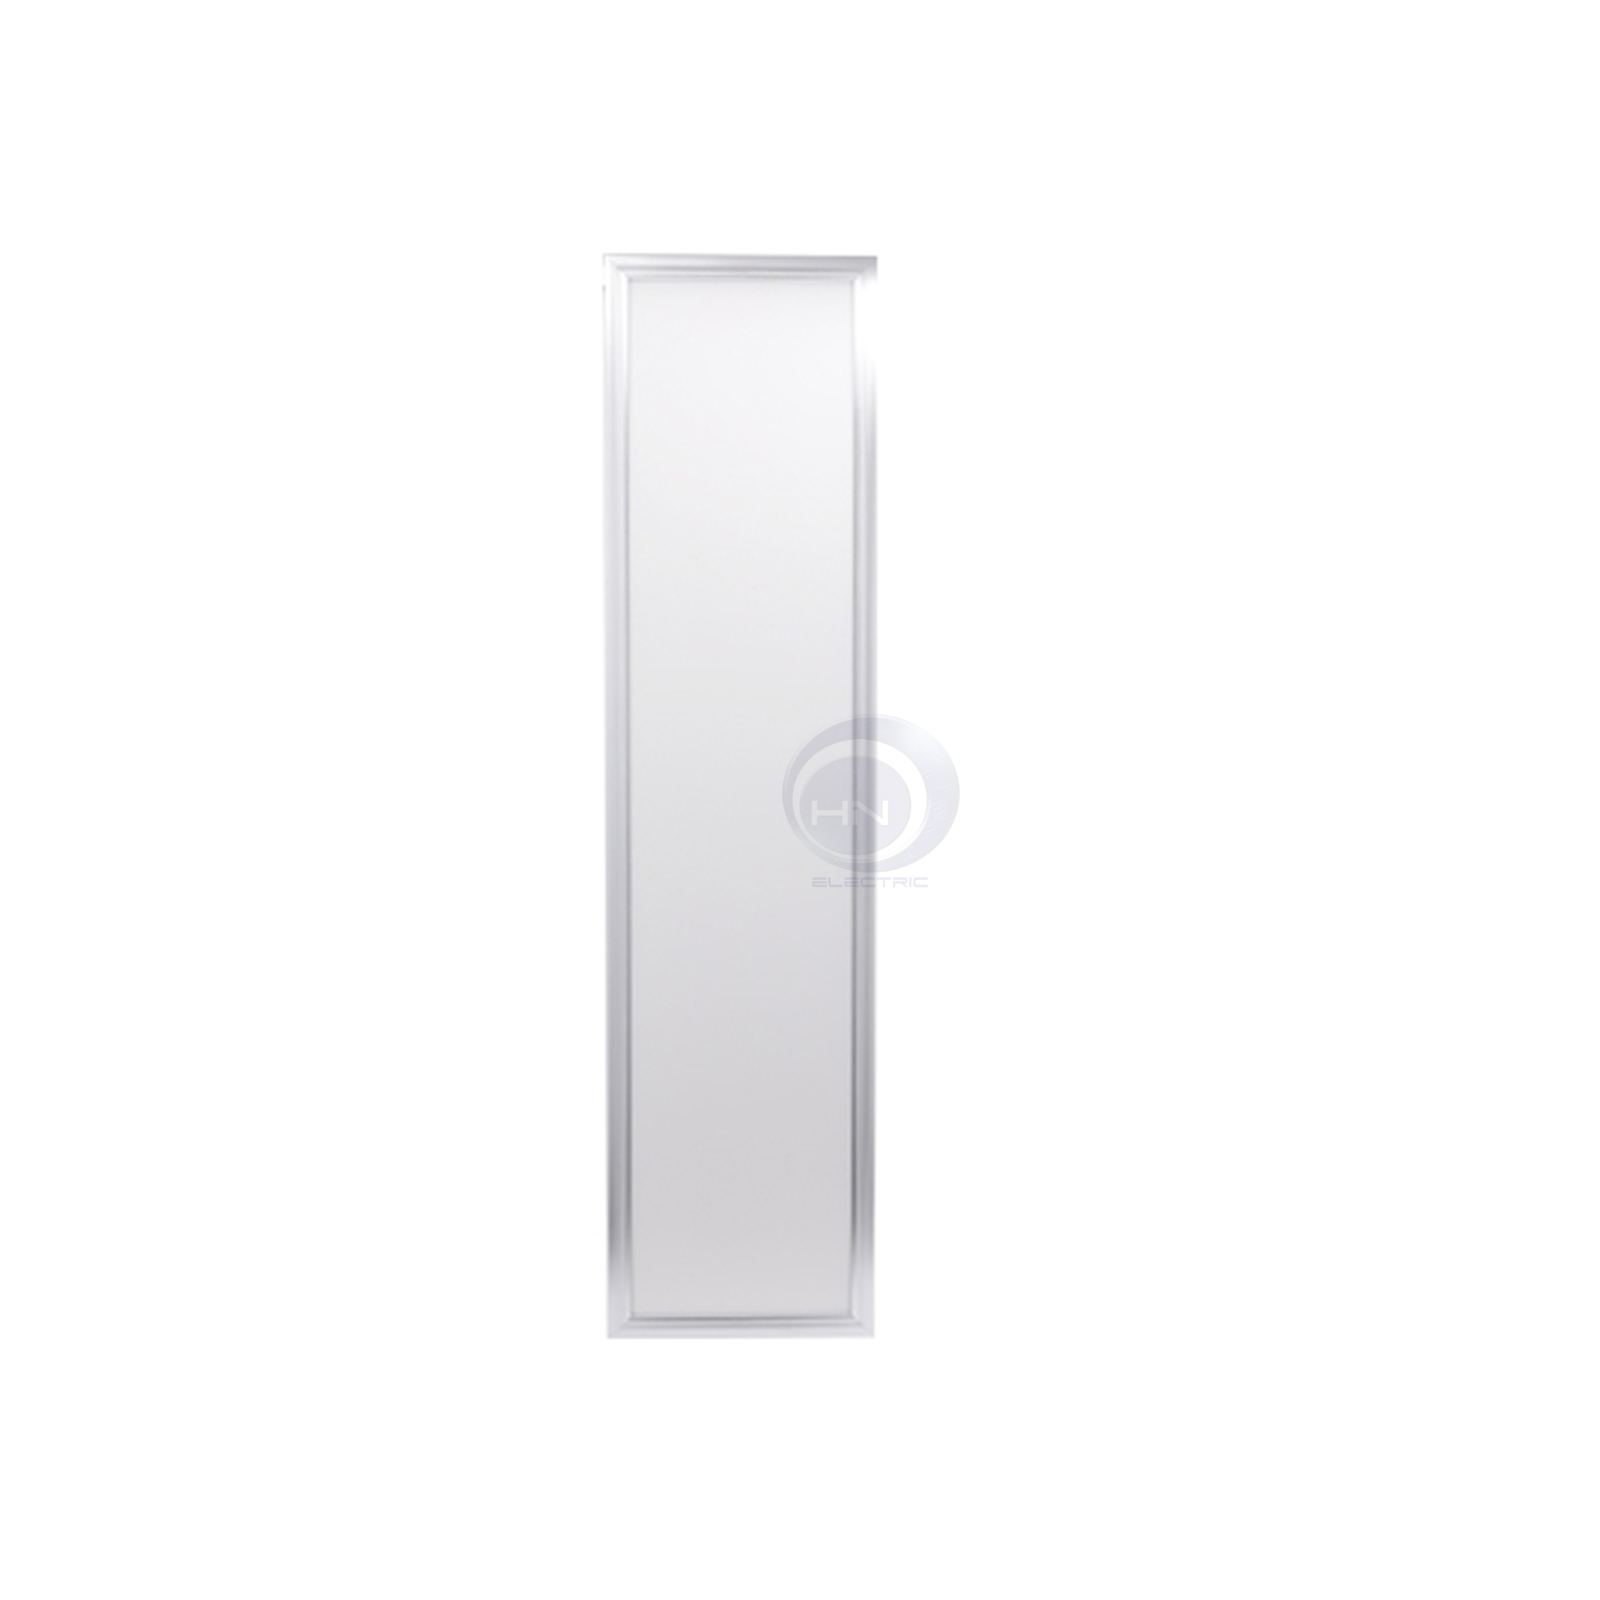 Đèn Led Panel mỏng 1200x300x9mm KingLed